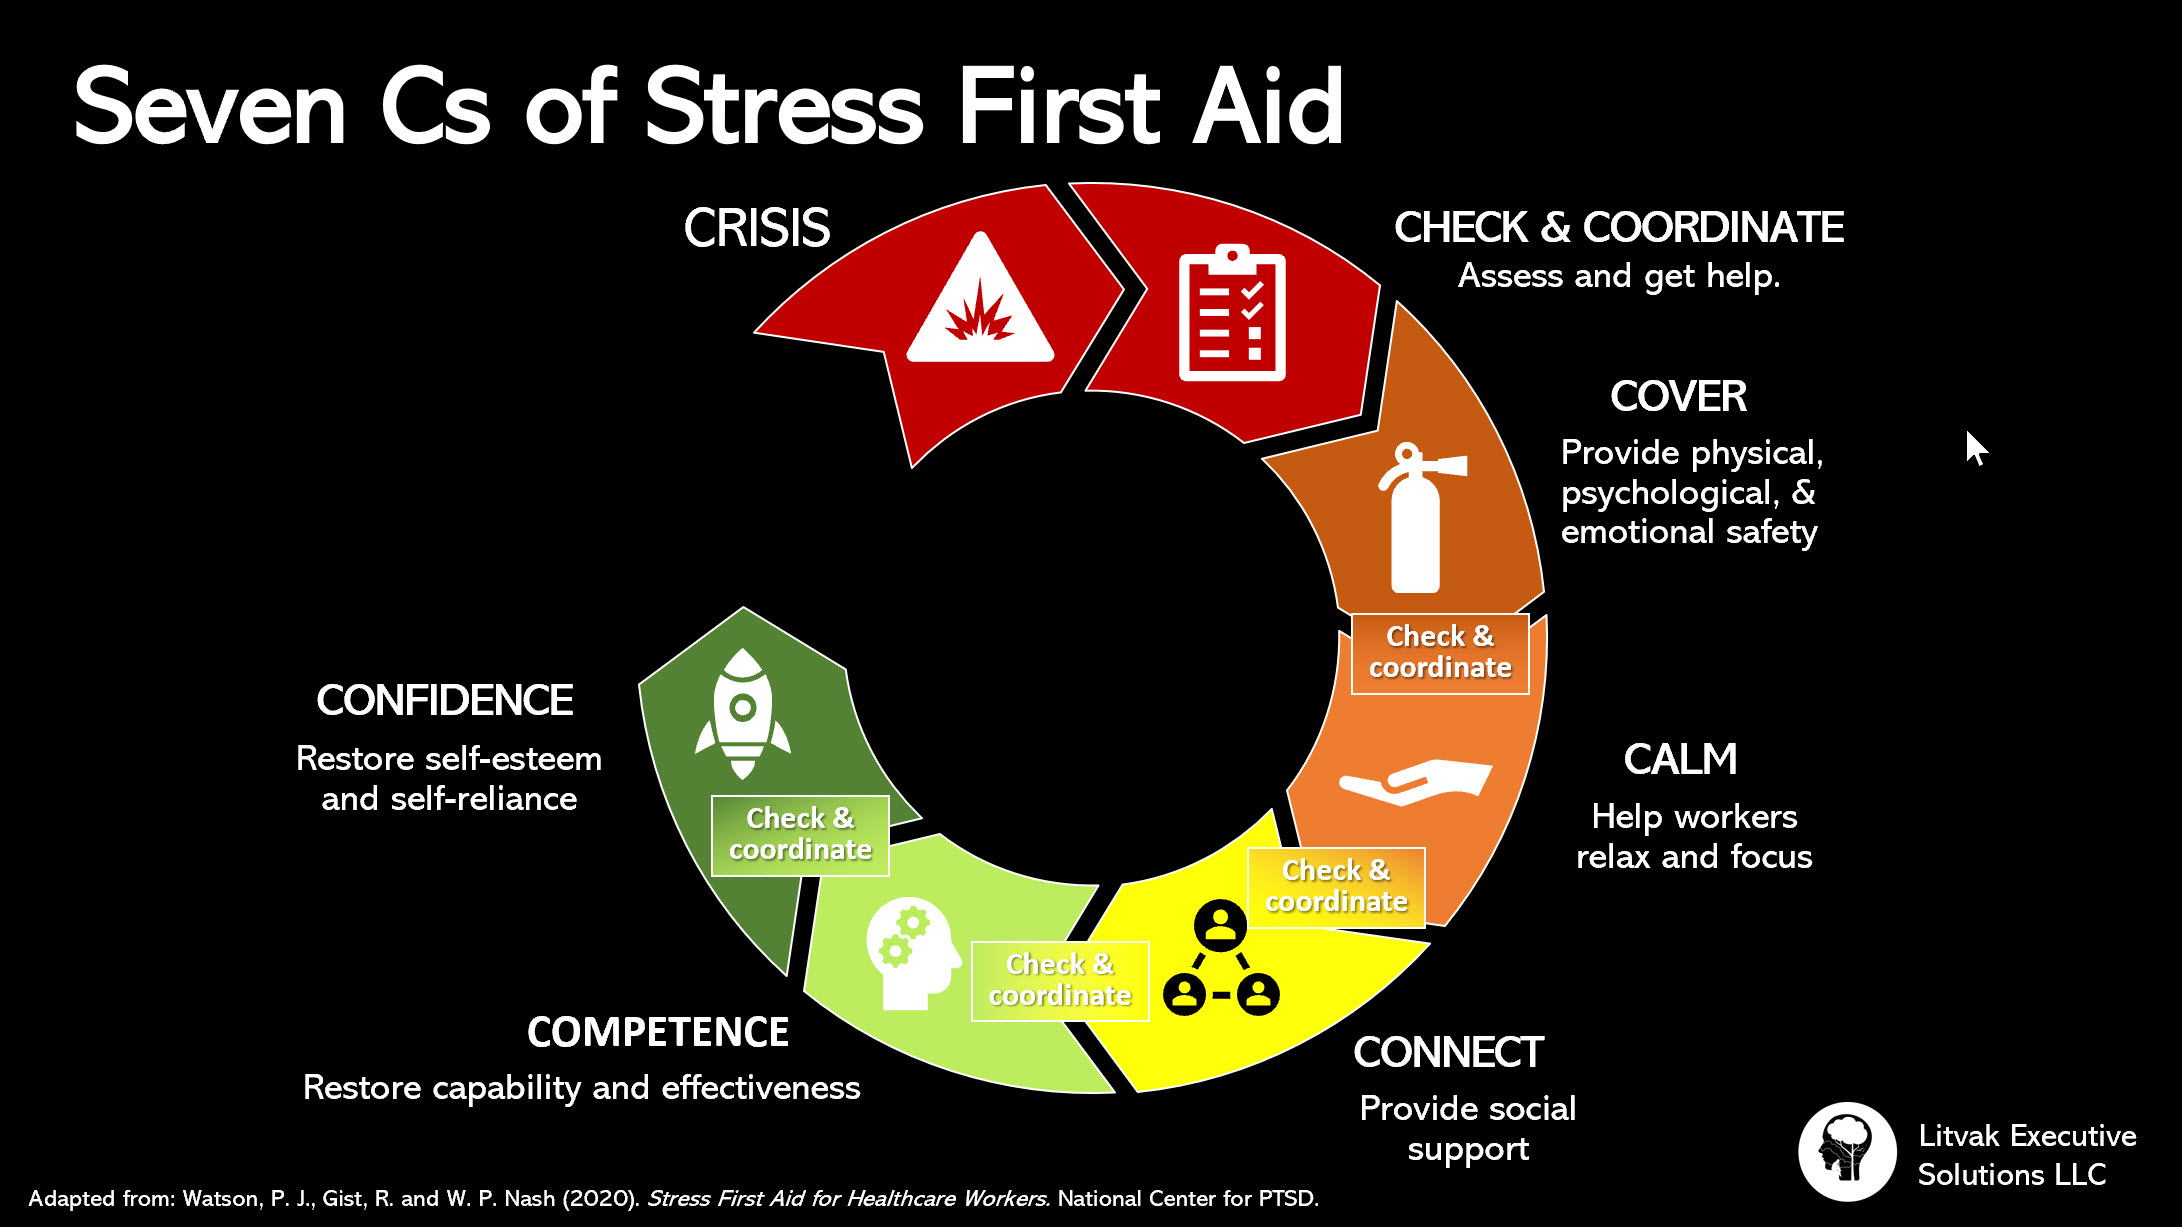 7 Cs of Stress First Aid